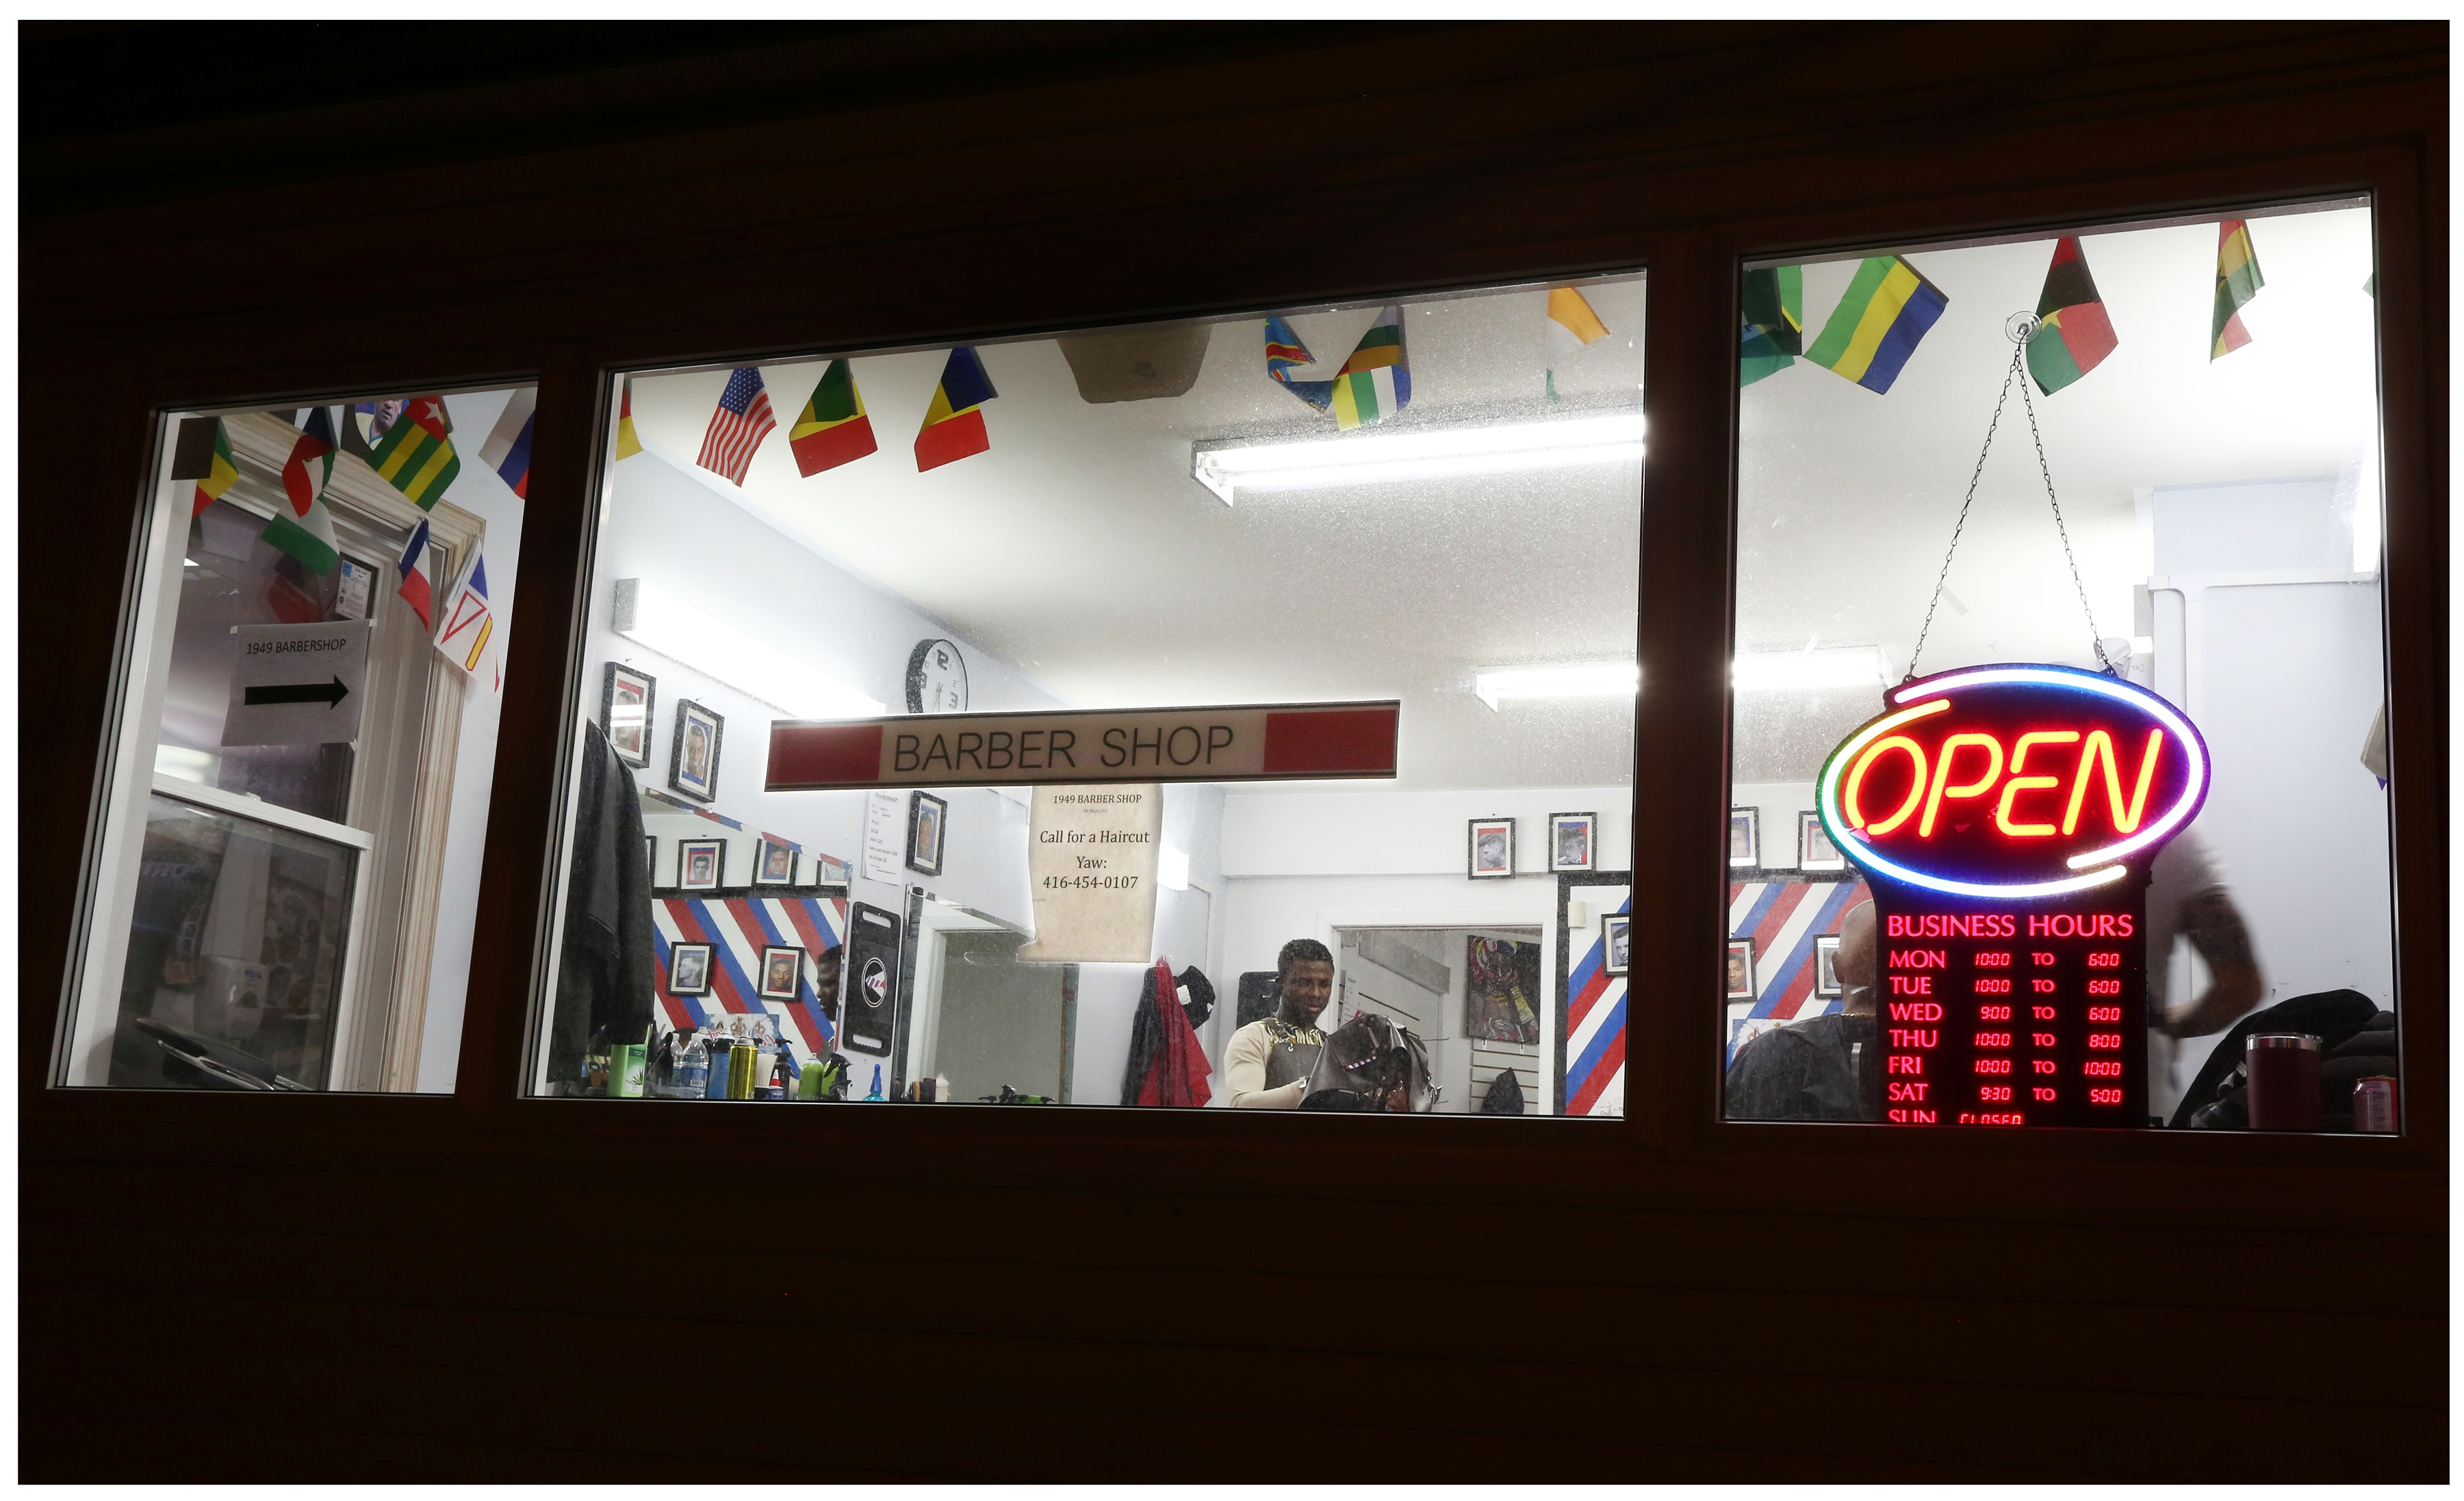 Yaw Antwi-Adjei works late one evening at 1949 Barber Shop. (Paul Daly)